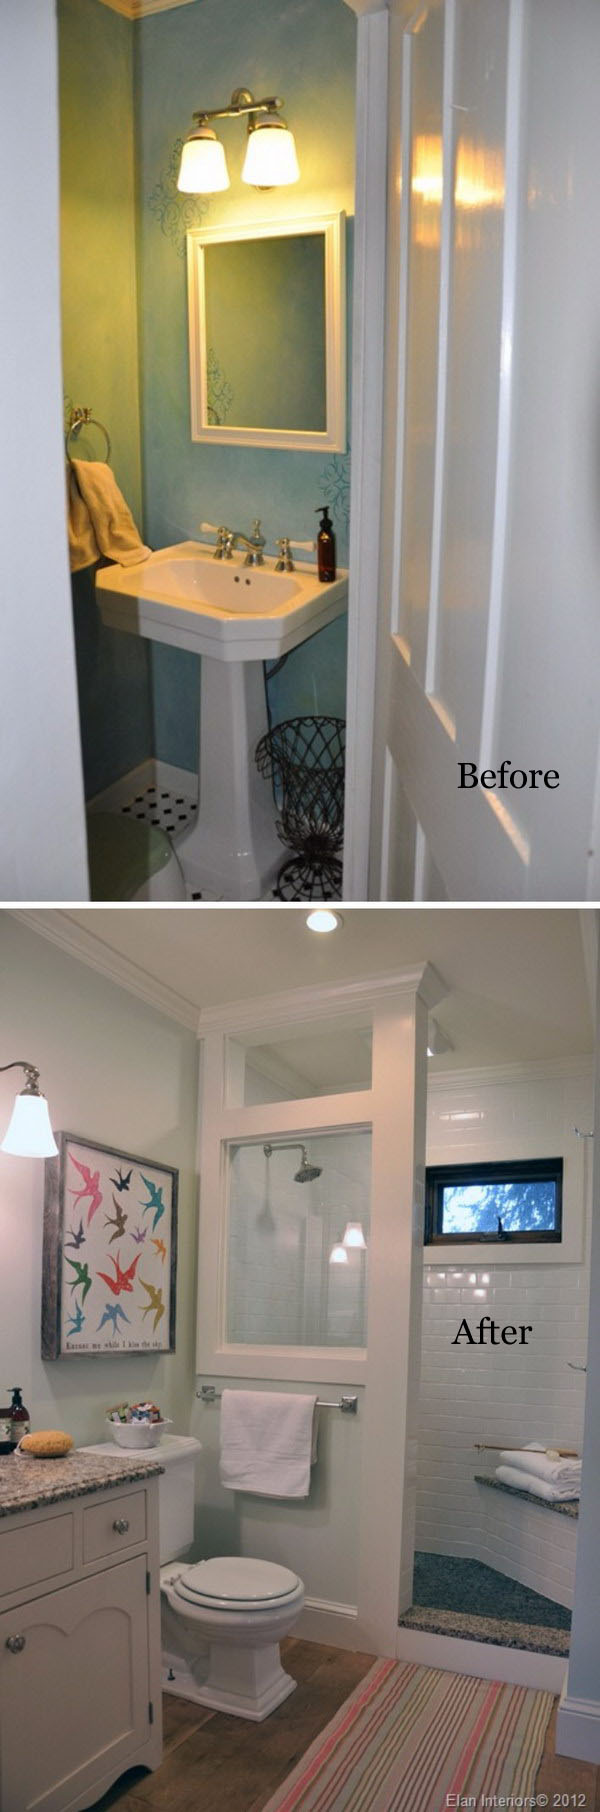 Before and After Farmhouse Bathroom Remodel.